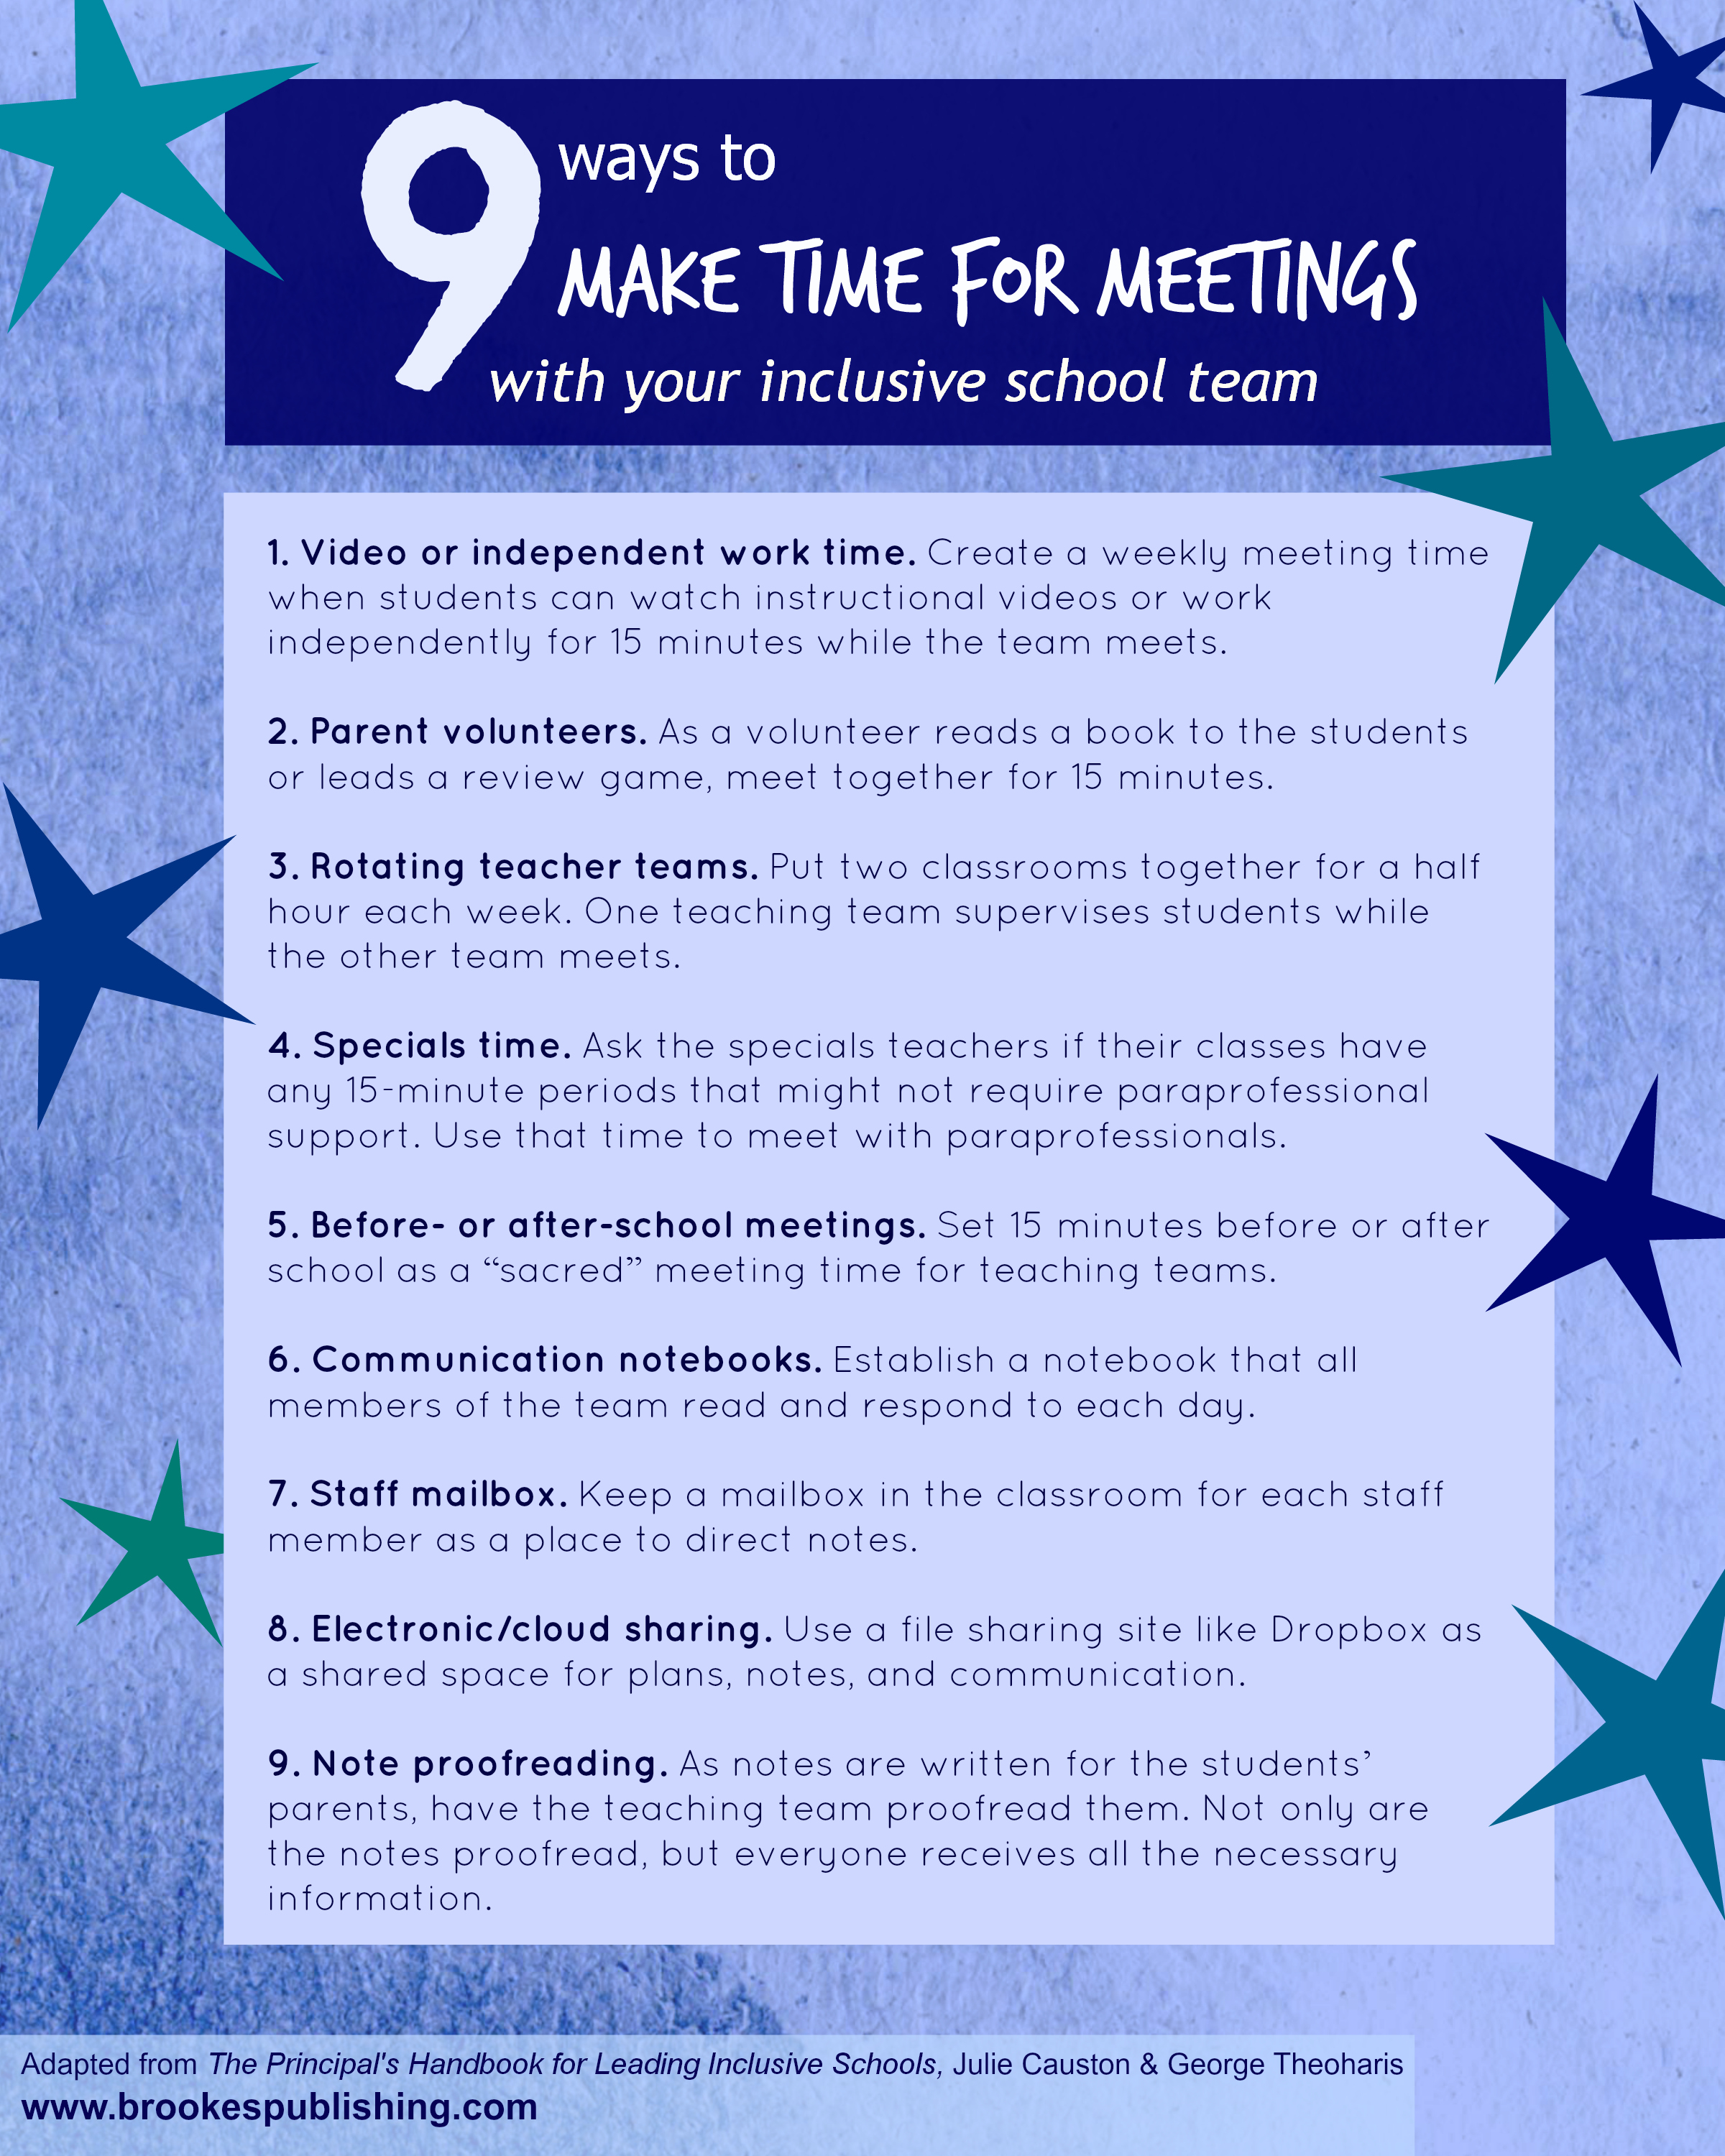 9 ways to make time for meetings with your inclusive school team